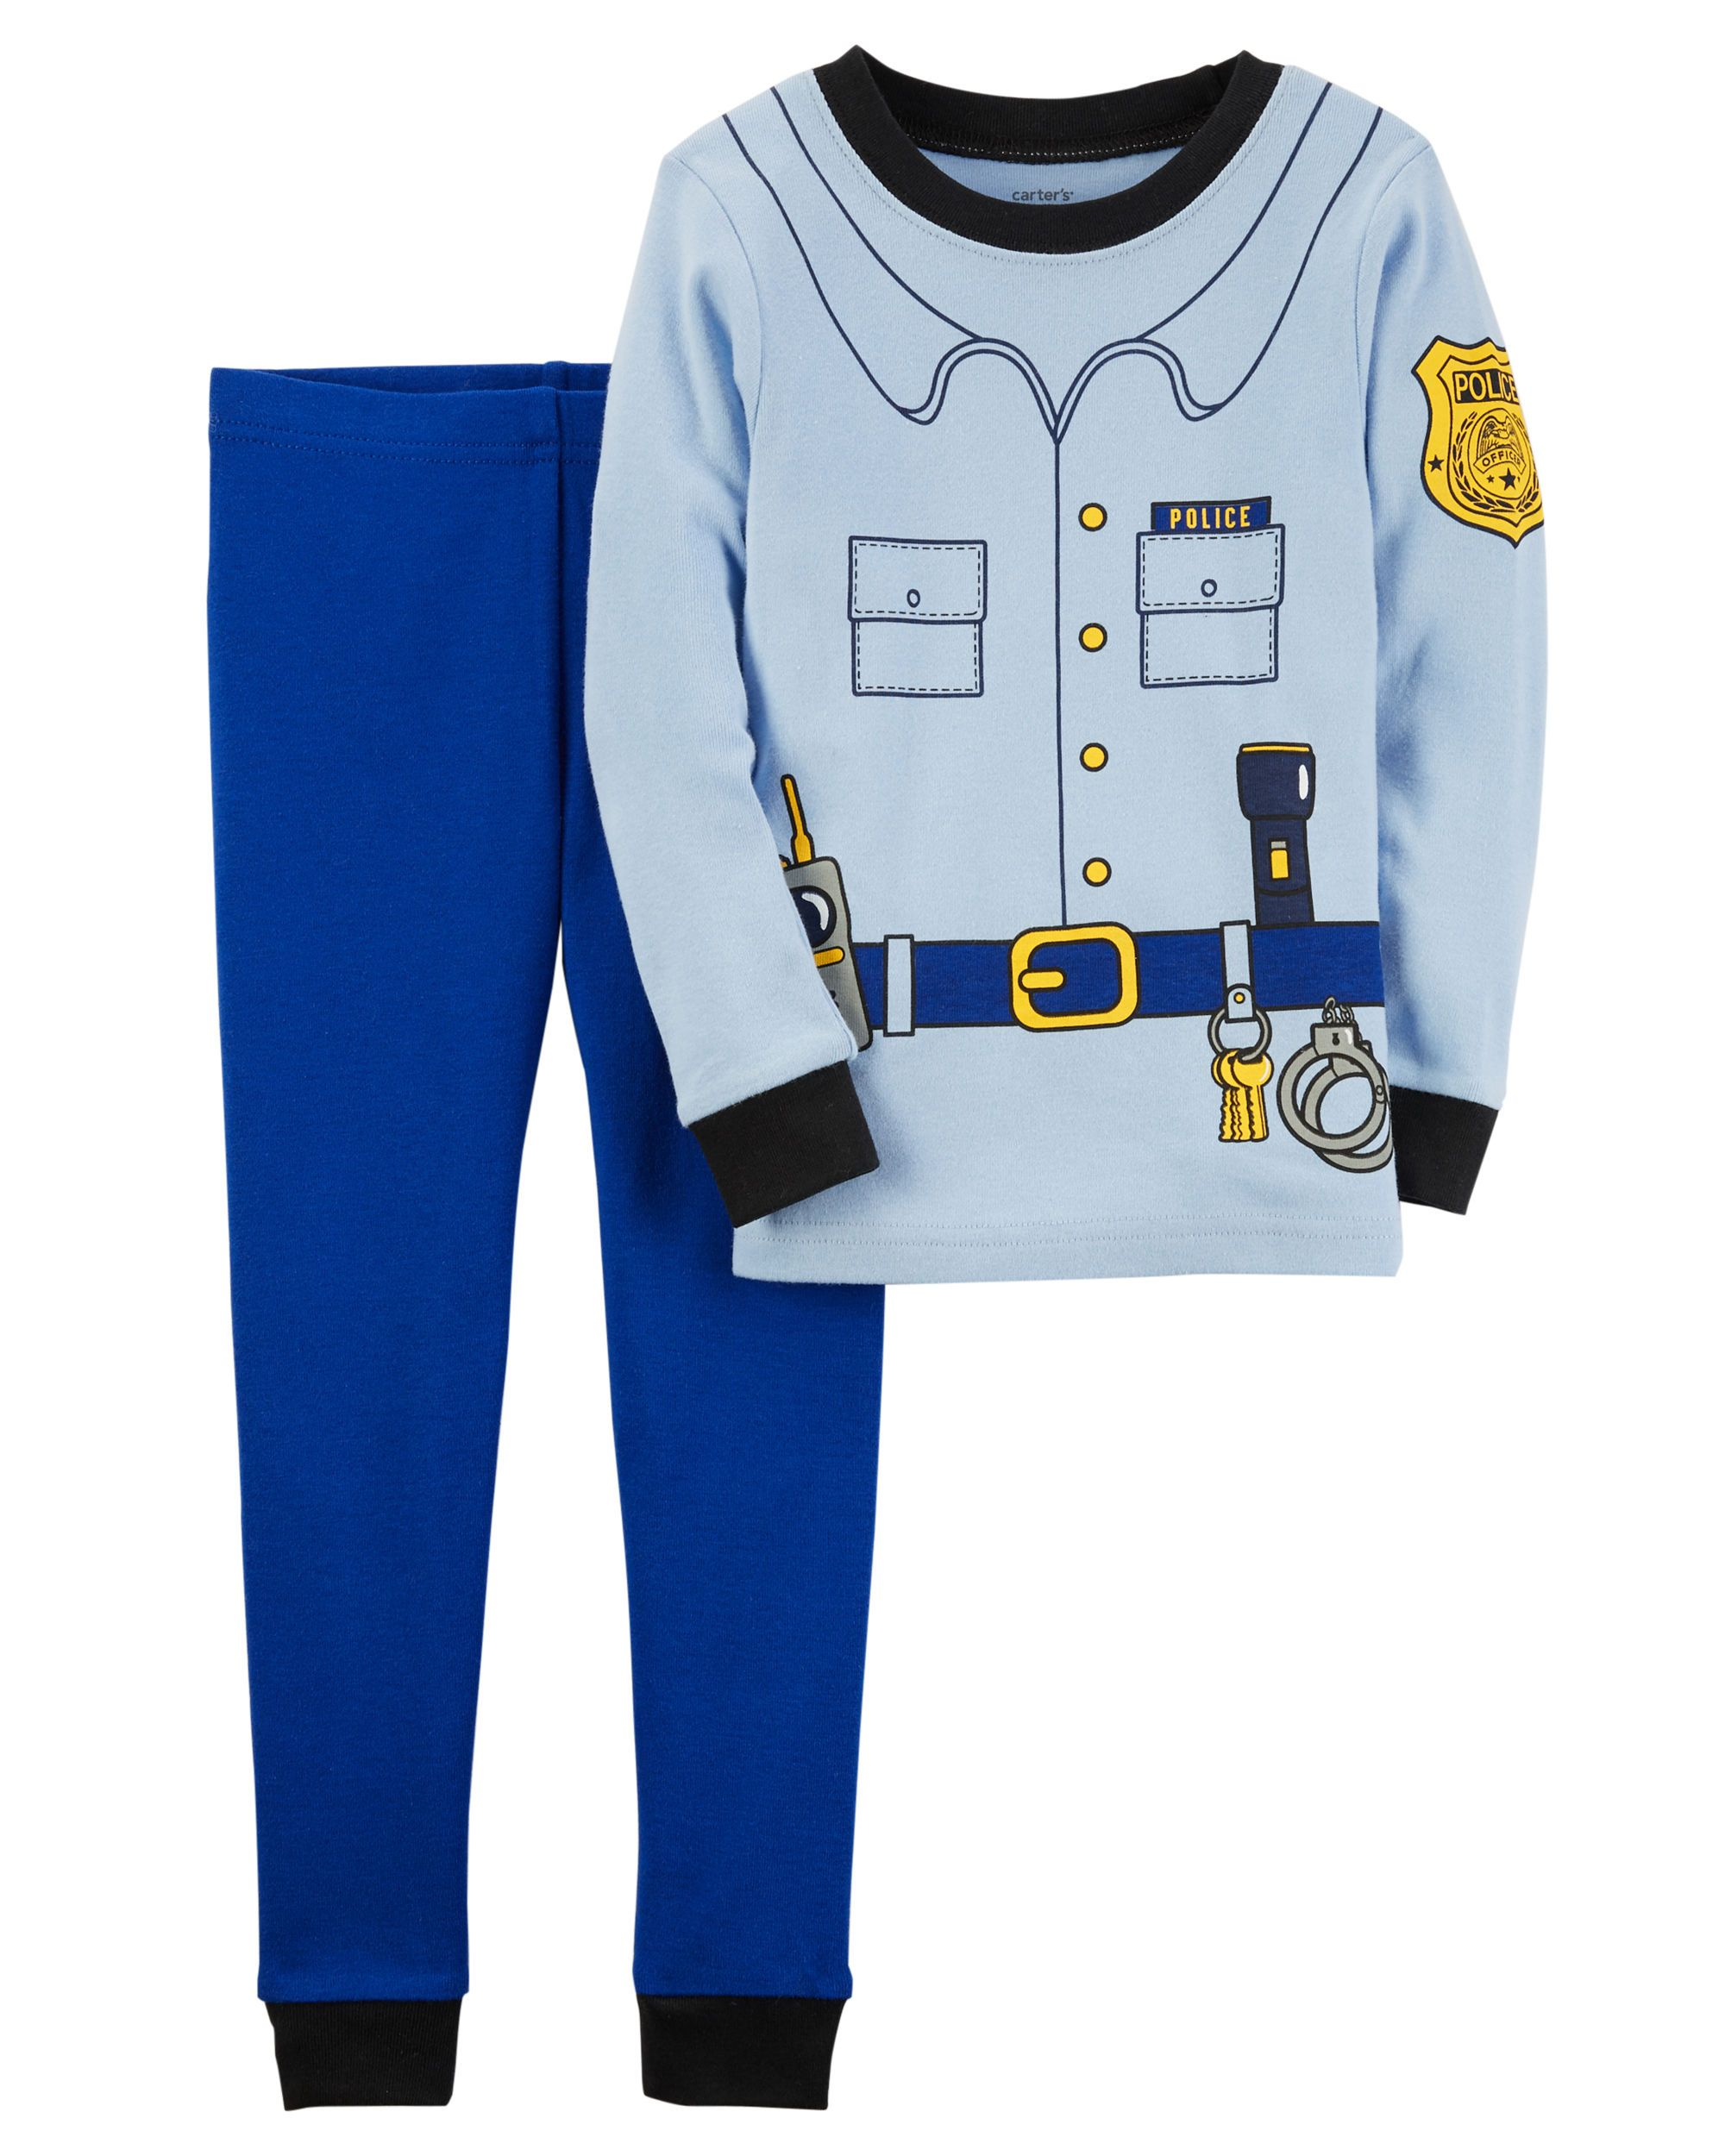 681b352ed2d9 2-Piece Police Officer Snug Fit Cotton PJs